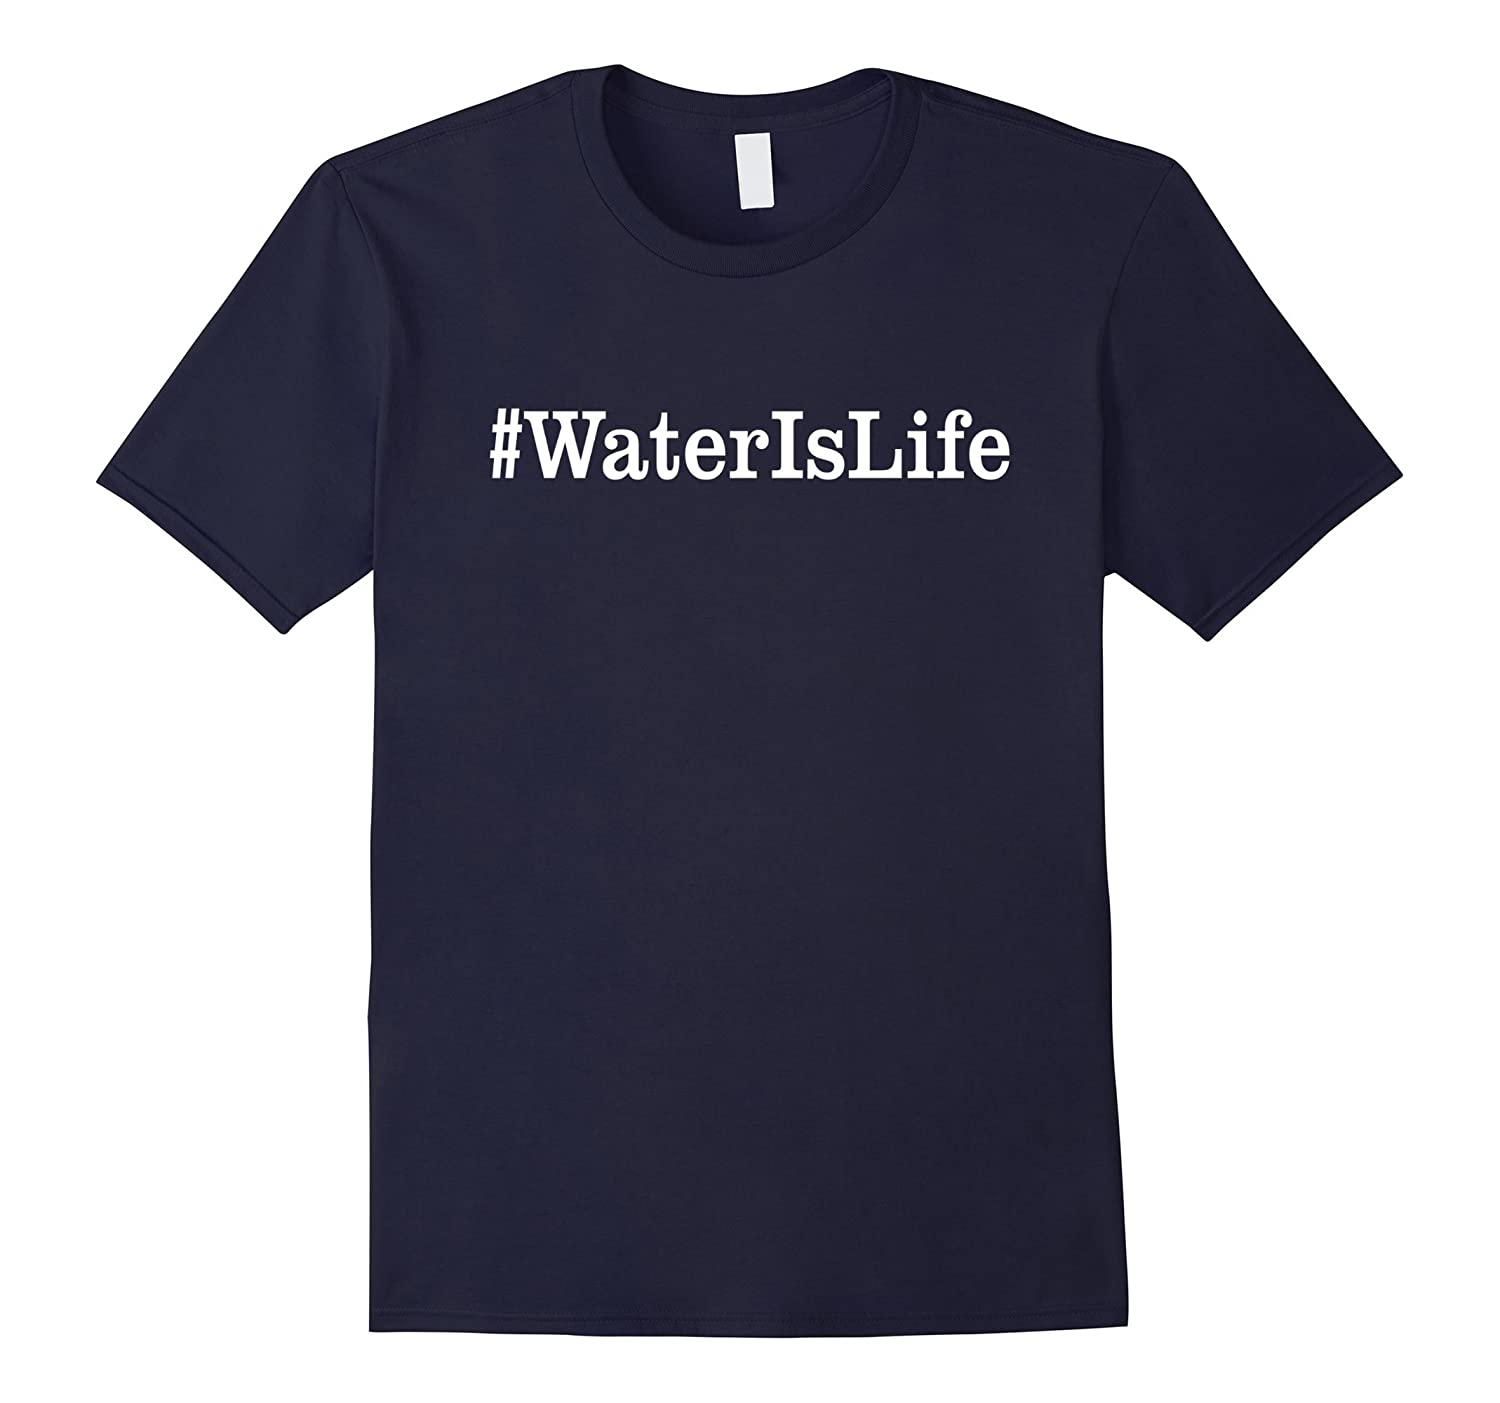 #waterislife - Water is life T shirt-CL